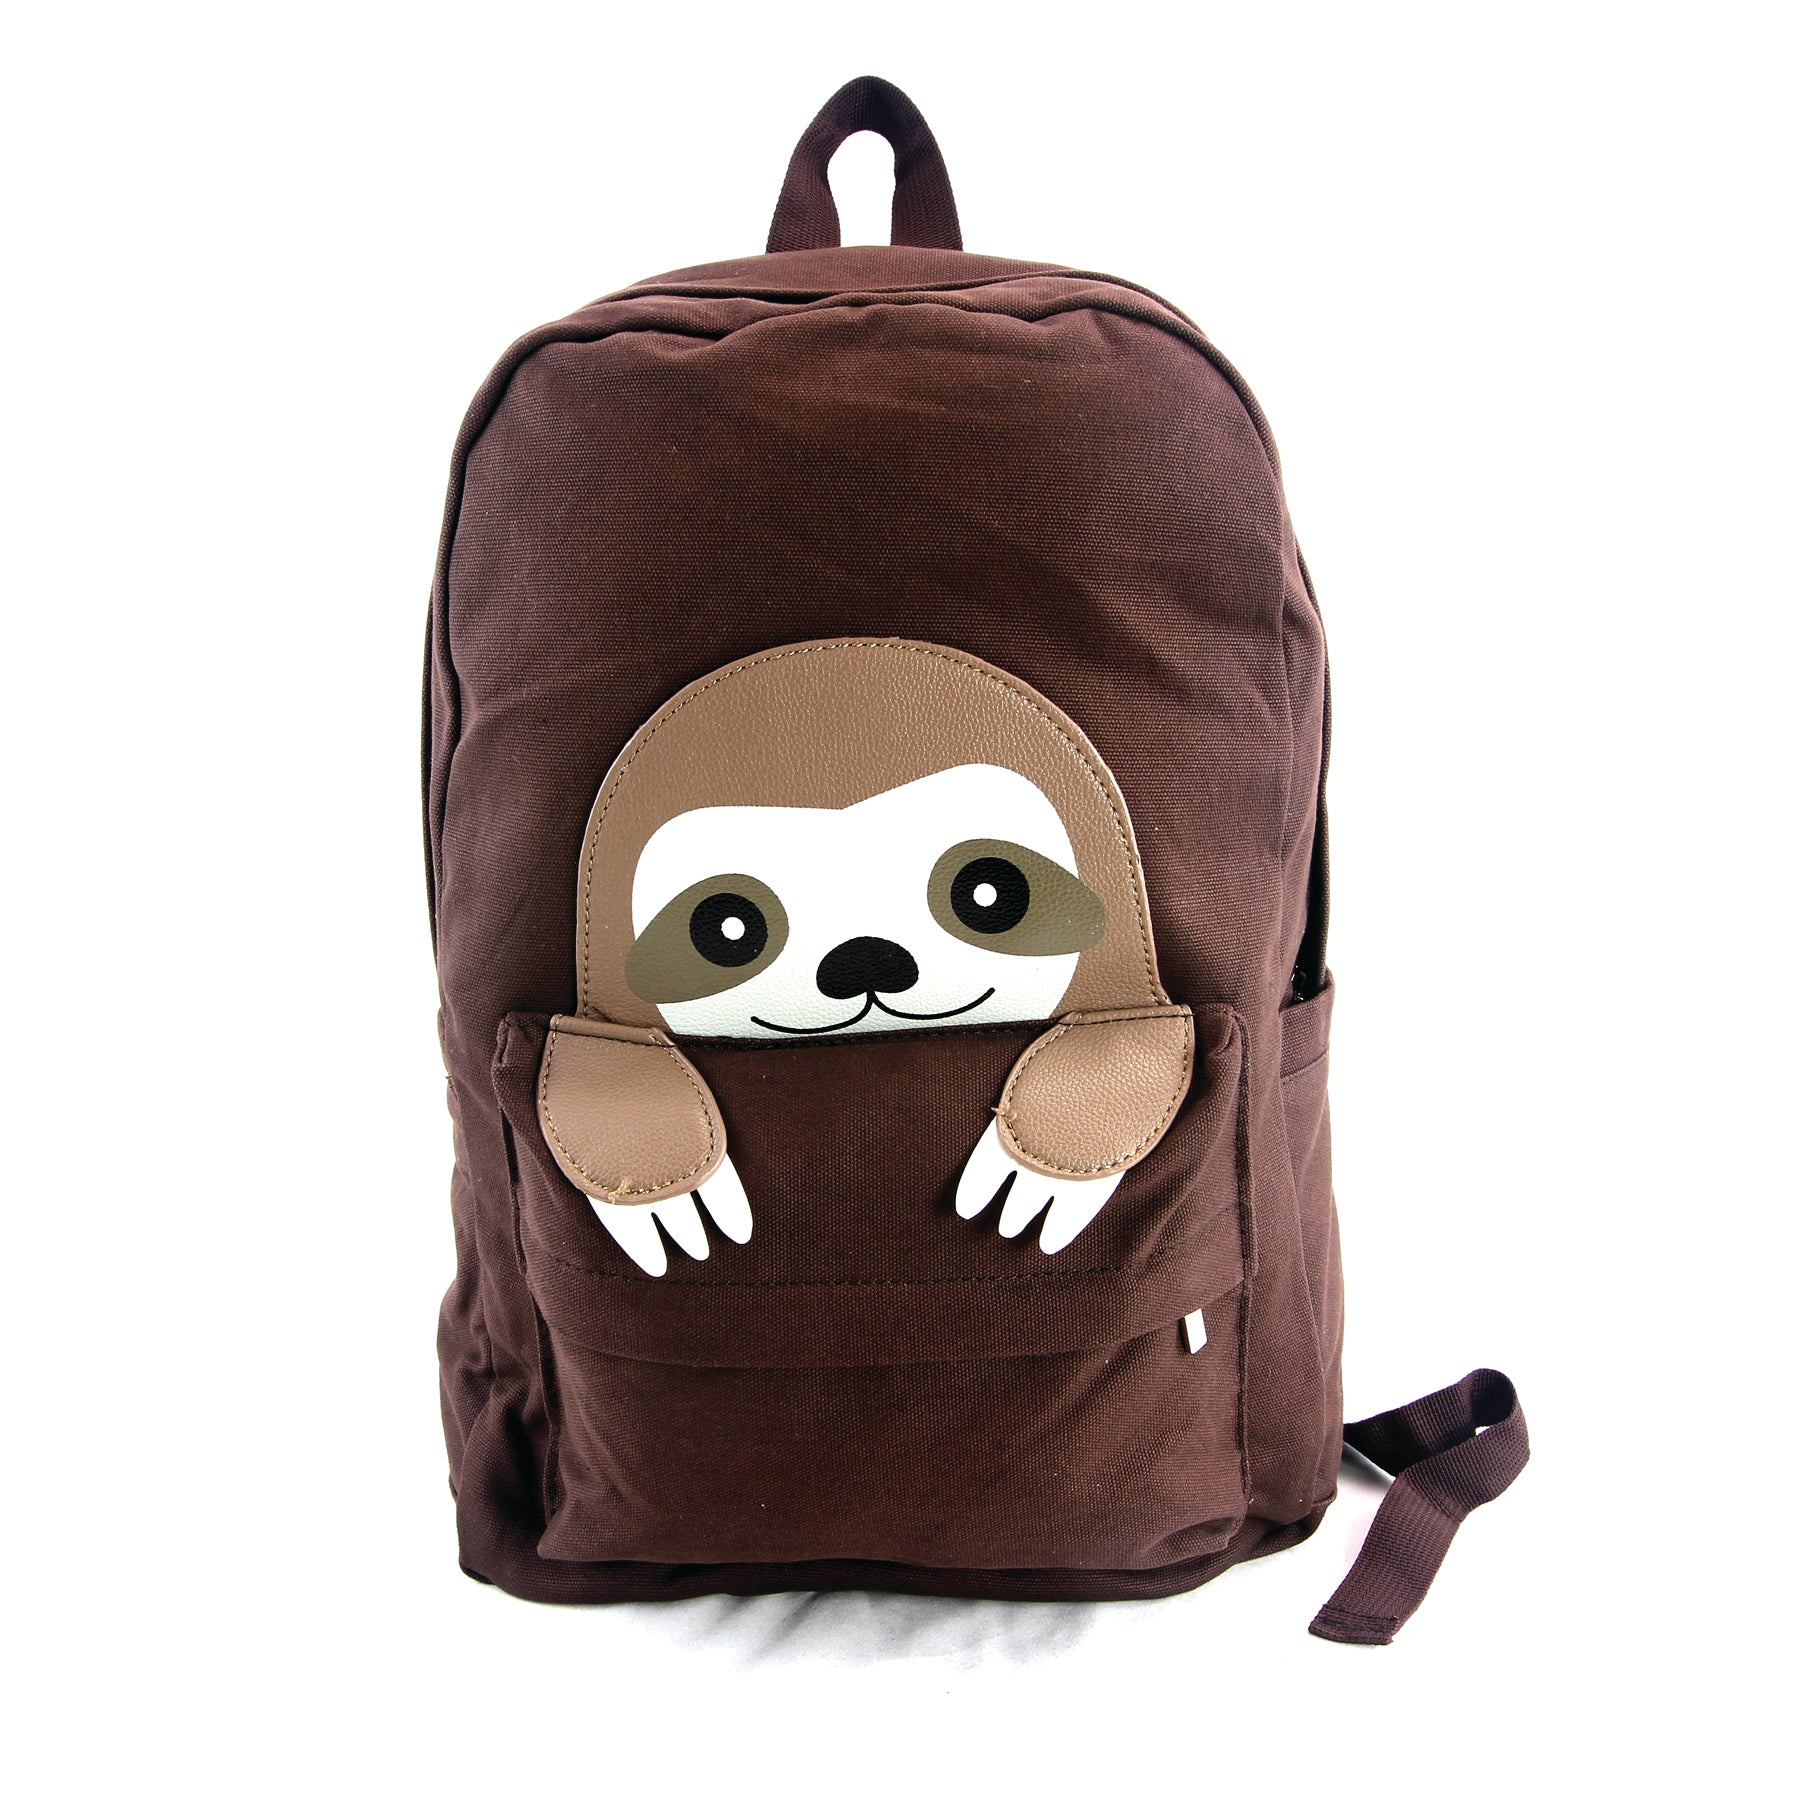 Peeking Baby Sloth Canvas Backpack front view